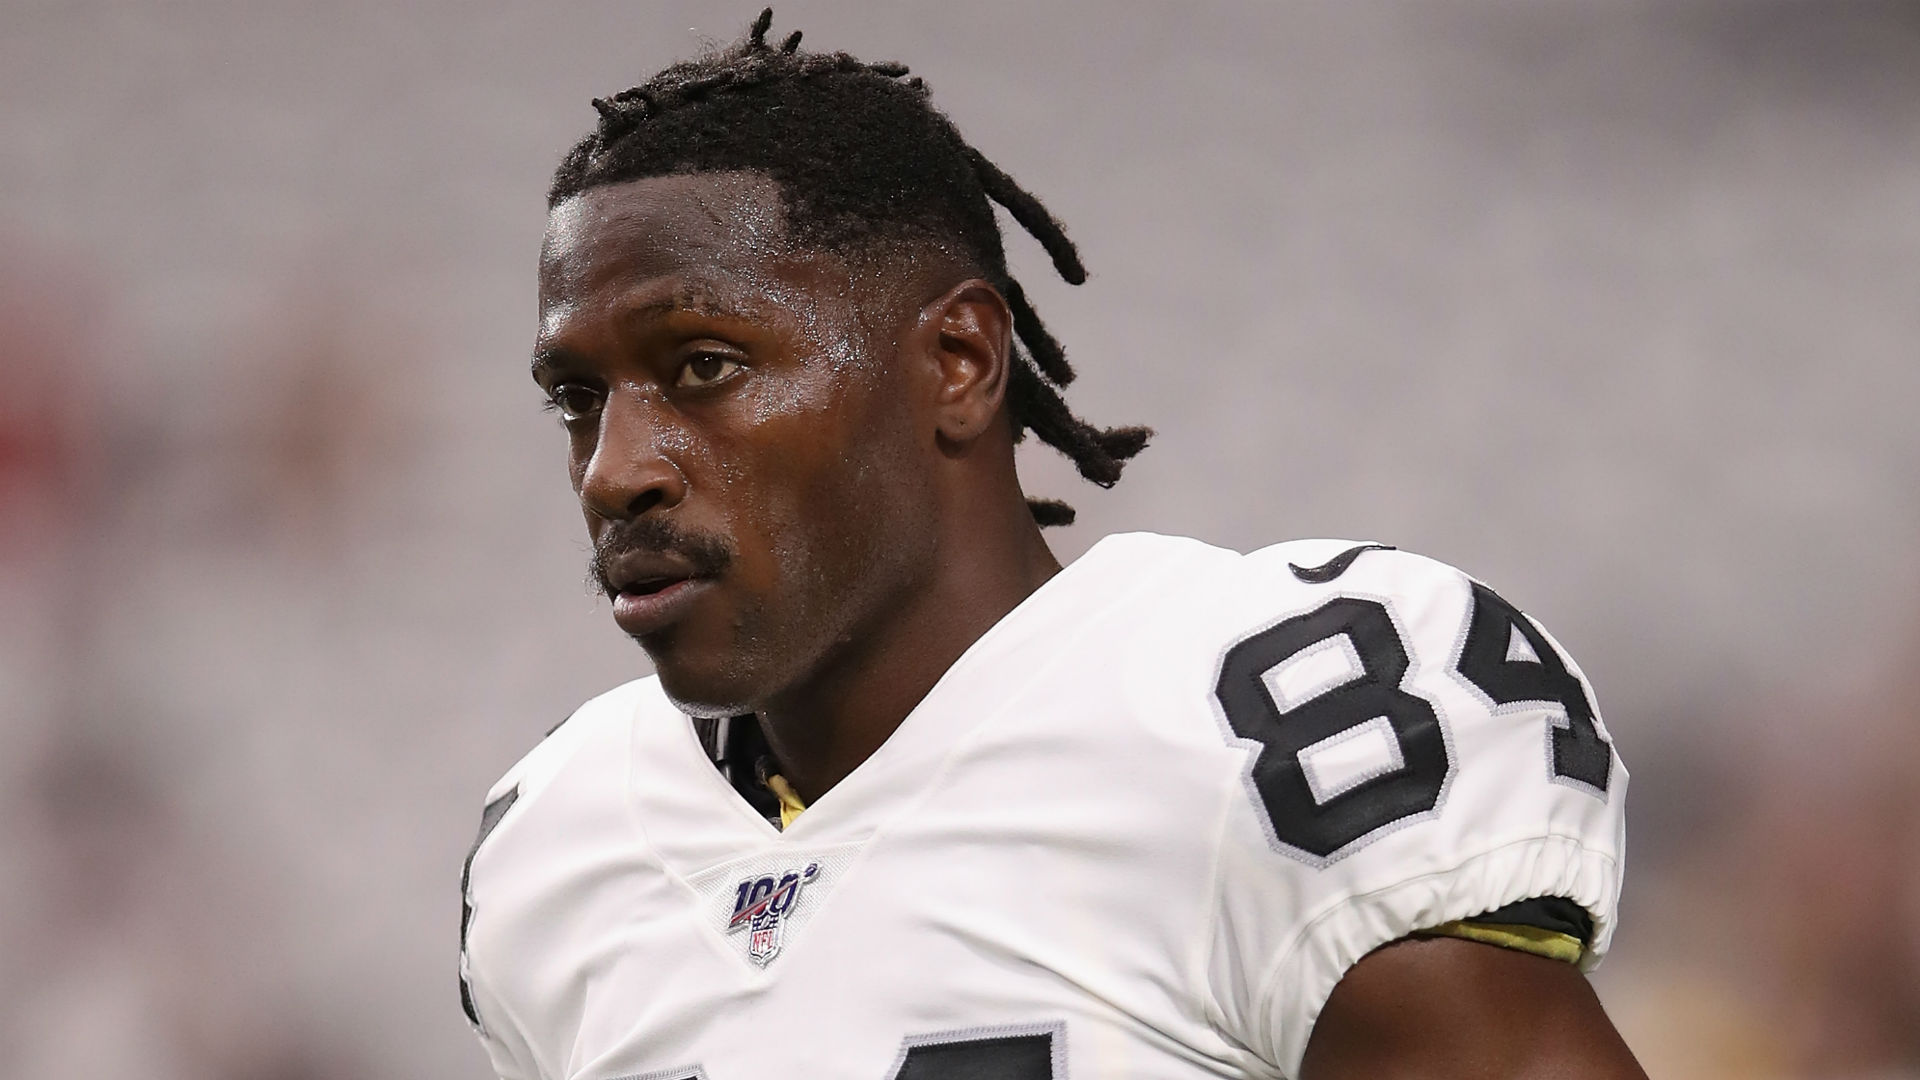 Antonio Brown rejected $2M settlement with sexual assault accuser, report says